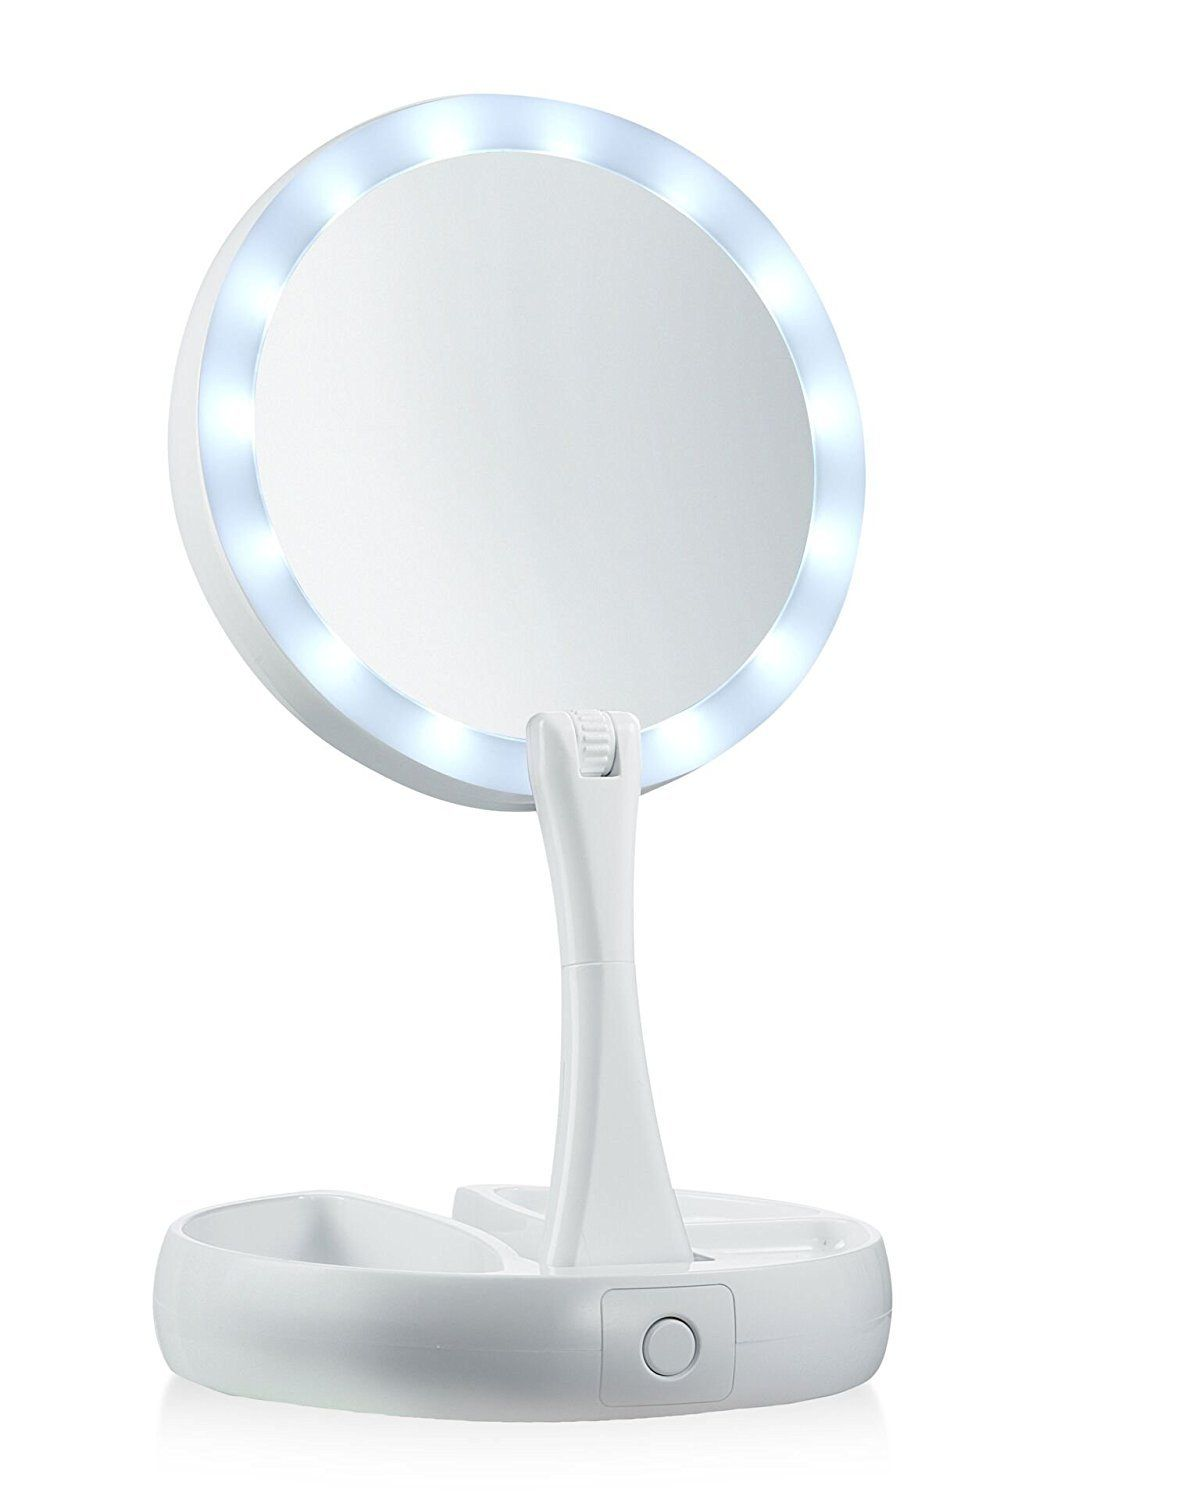 My Foldaway Mirror The Lighted Double Sided Vanity Mirror 10x Magnification As Seen On Tv Led Makeup Mirror Mirror With Lights Makeup Mirror With Lights